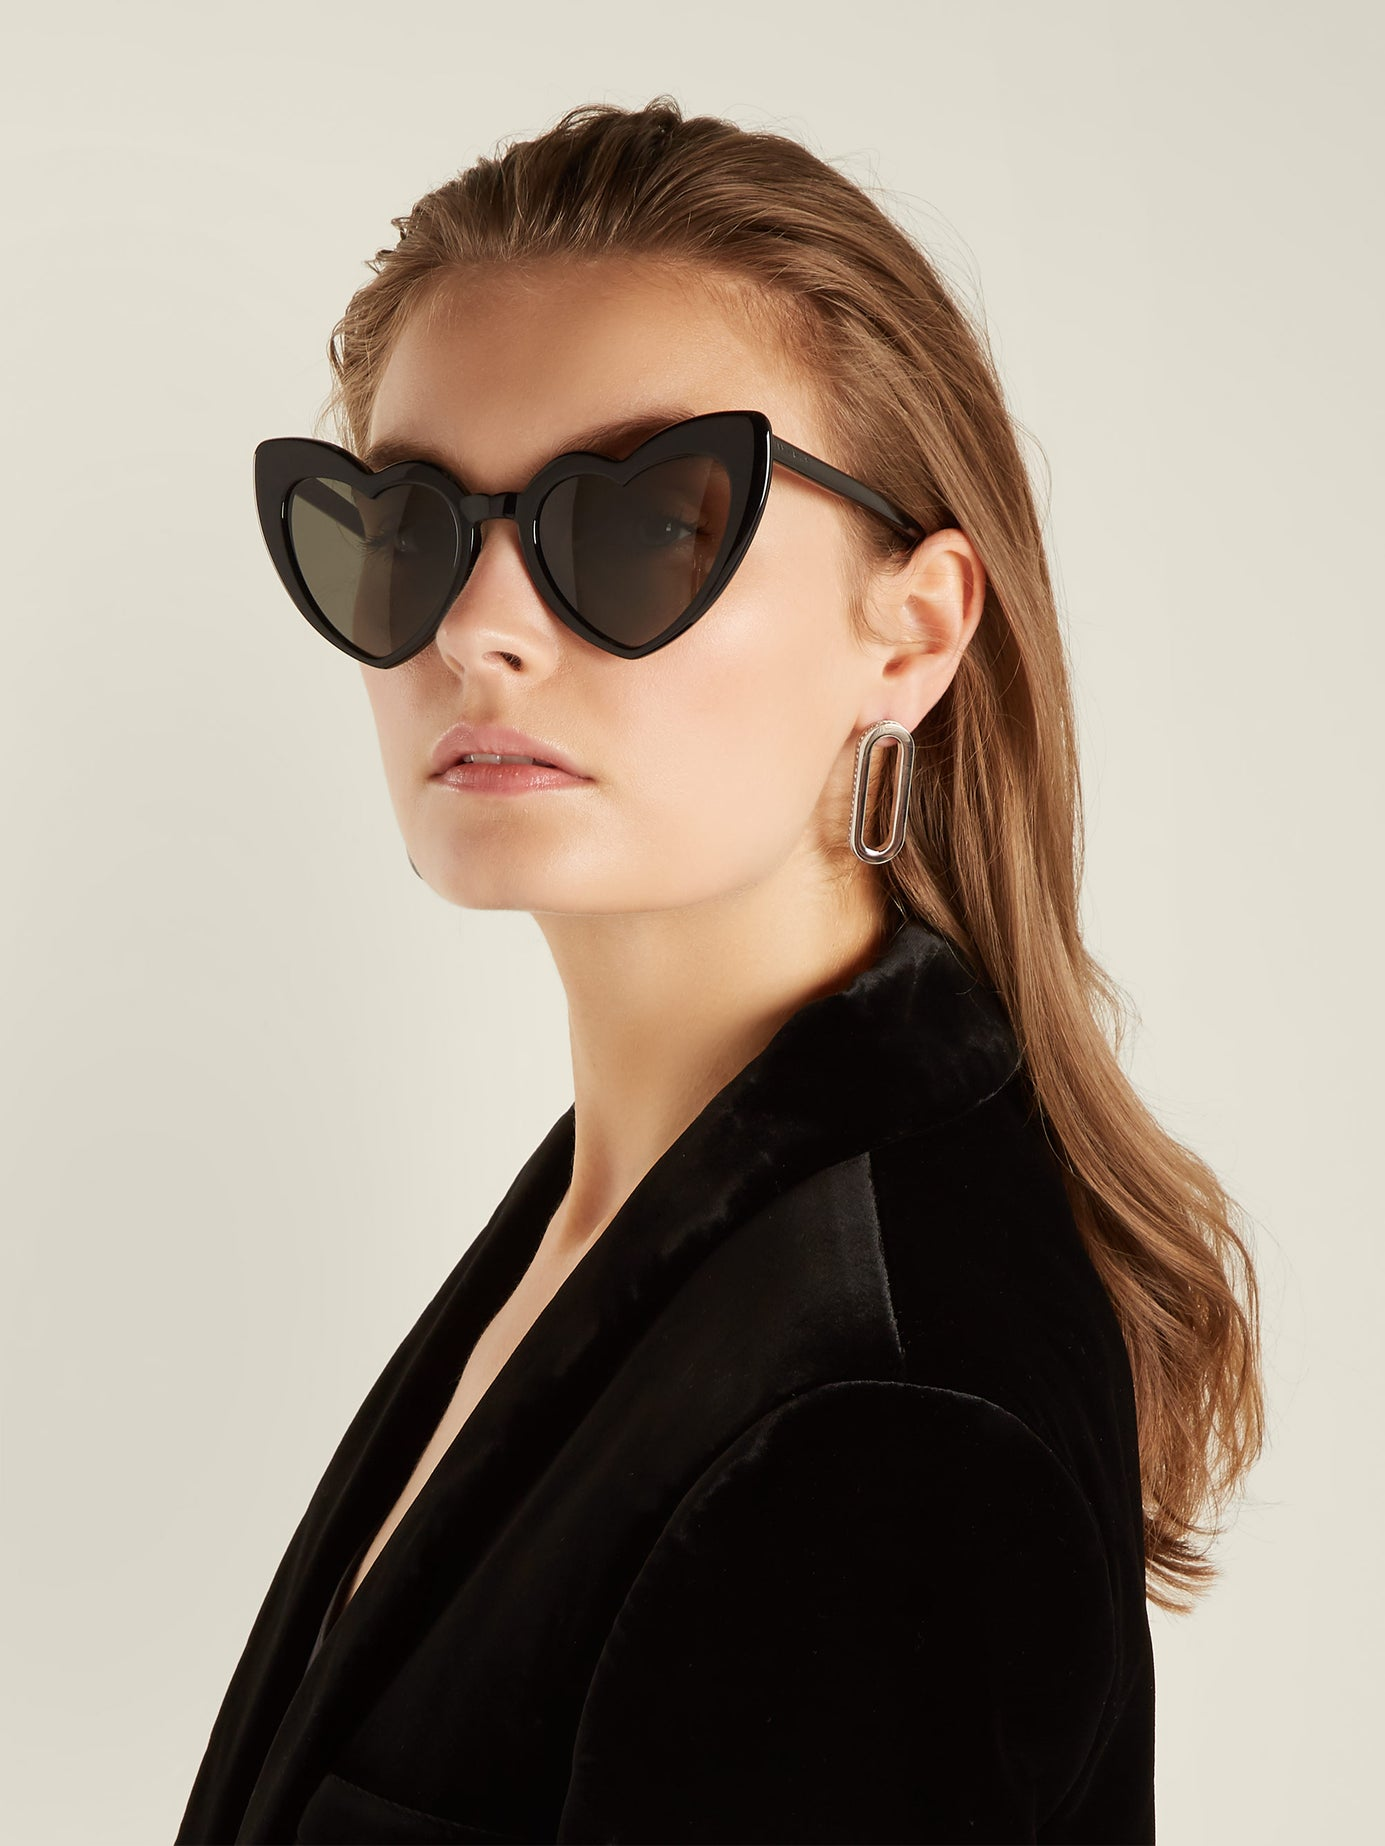 Saint Laurent Loulou heart shaped acetate sunglasses -£265